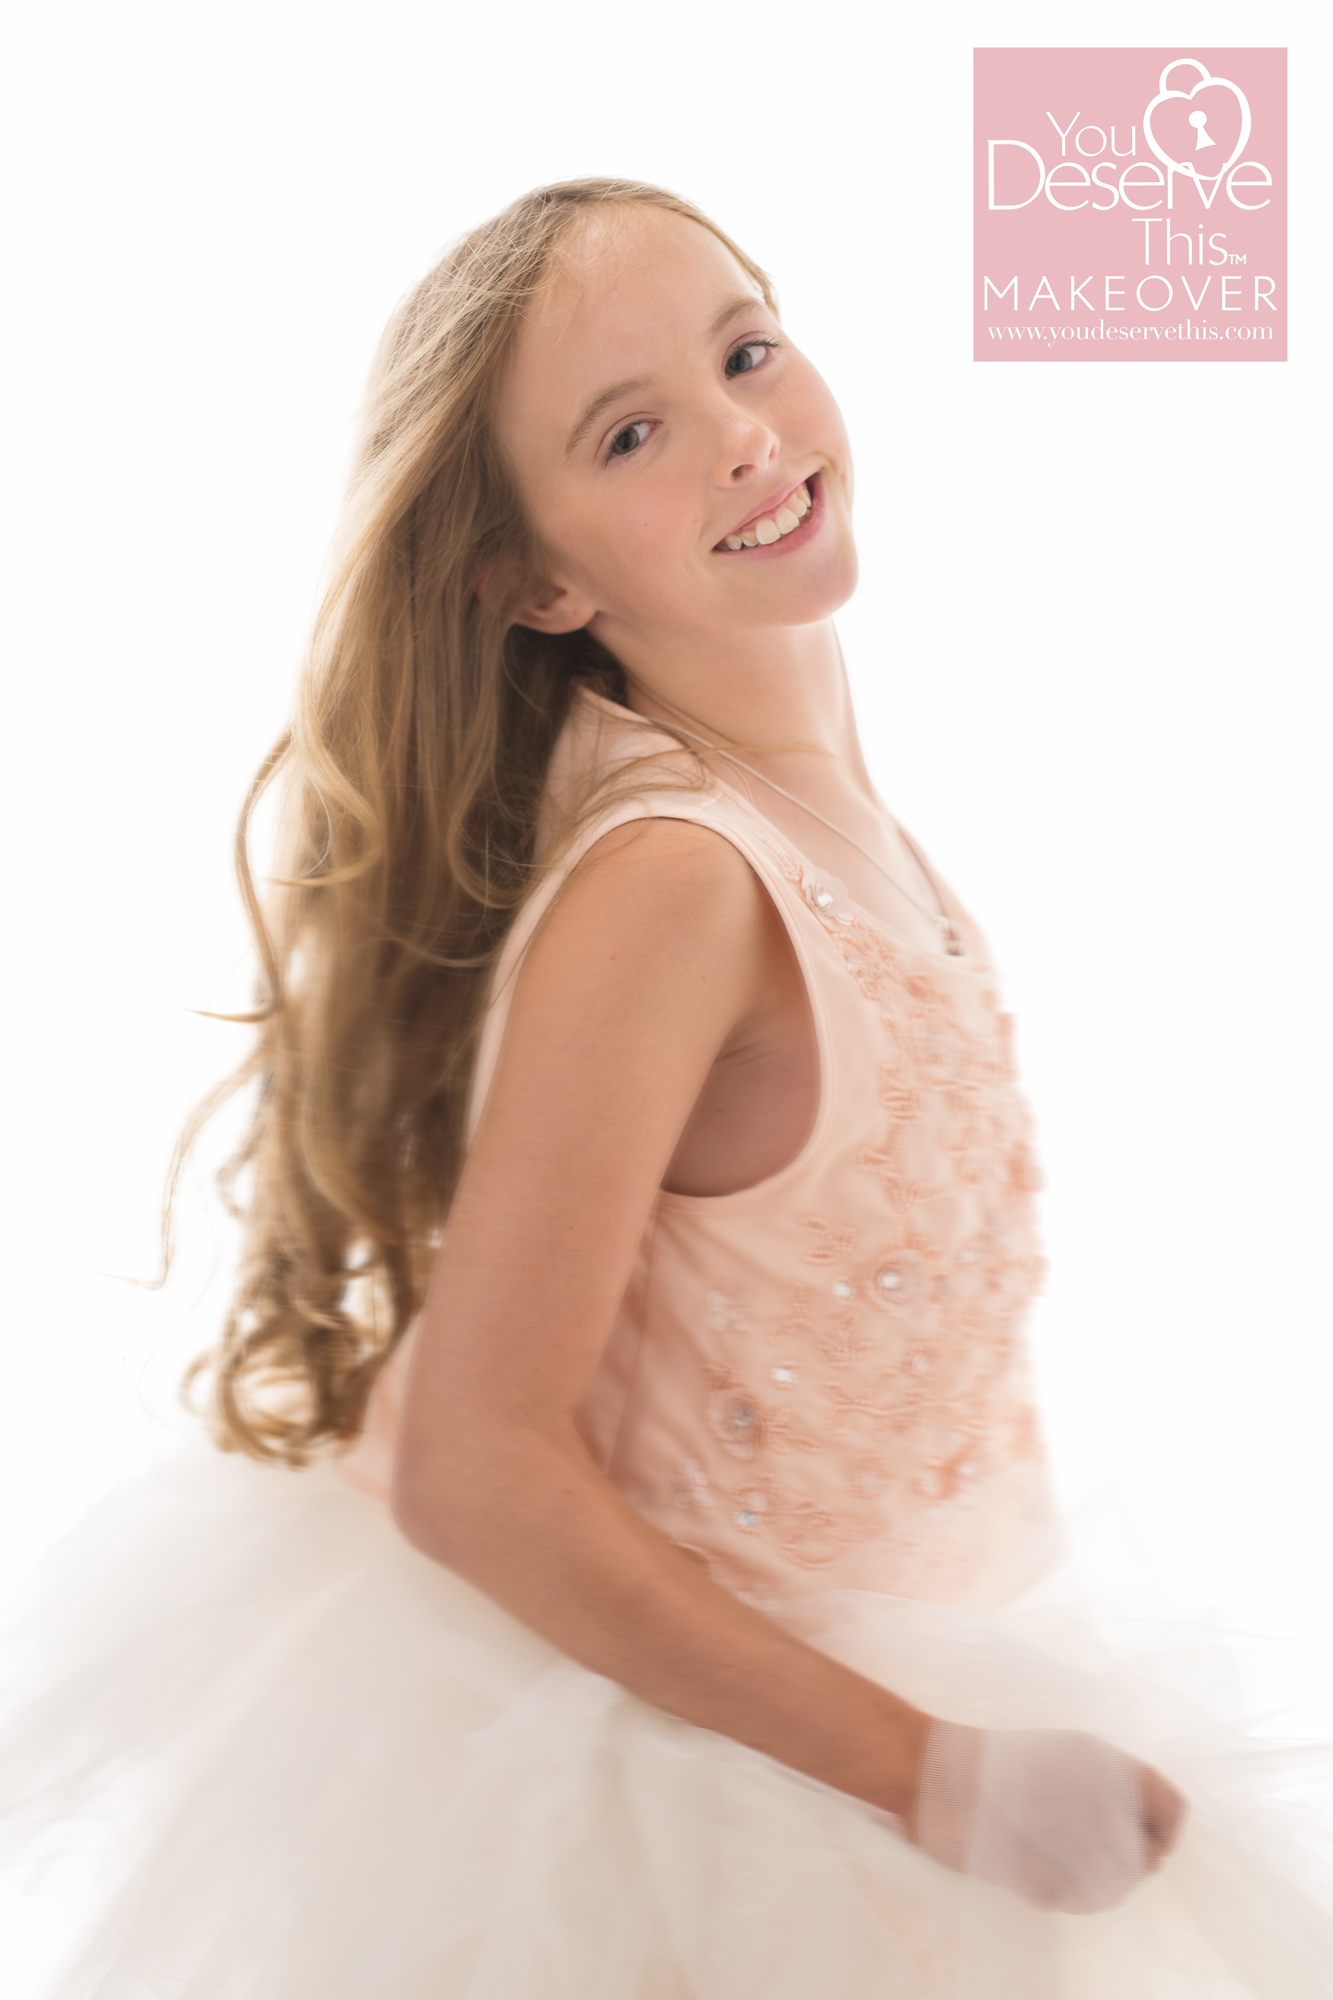 We have so much fun at our studio, dancing and twirling in your favourite dresses and some fabulous tulle skirts too. Every young girl deserves to feel beautiful.  youdeservethis.com